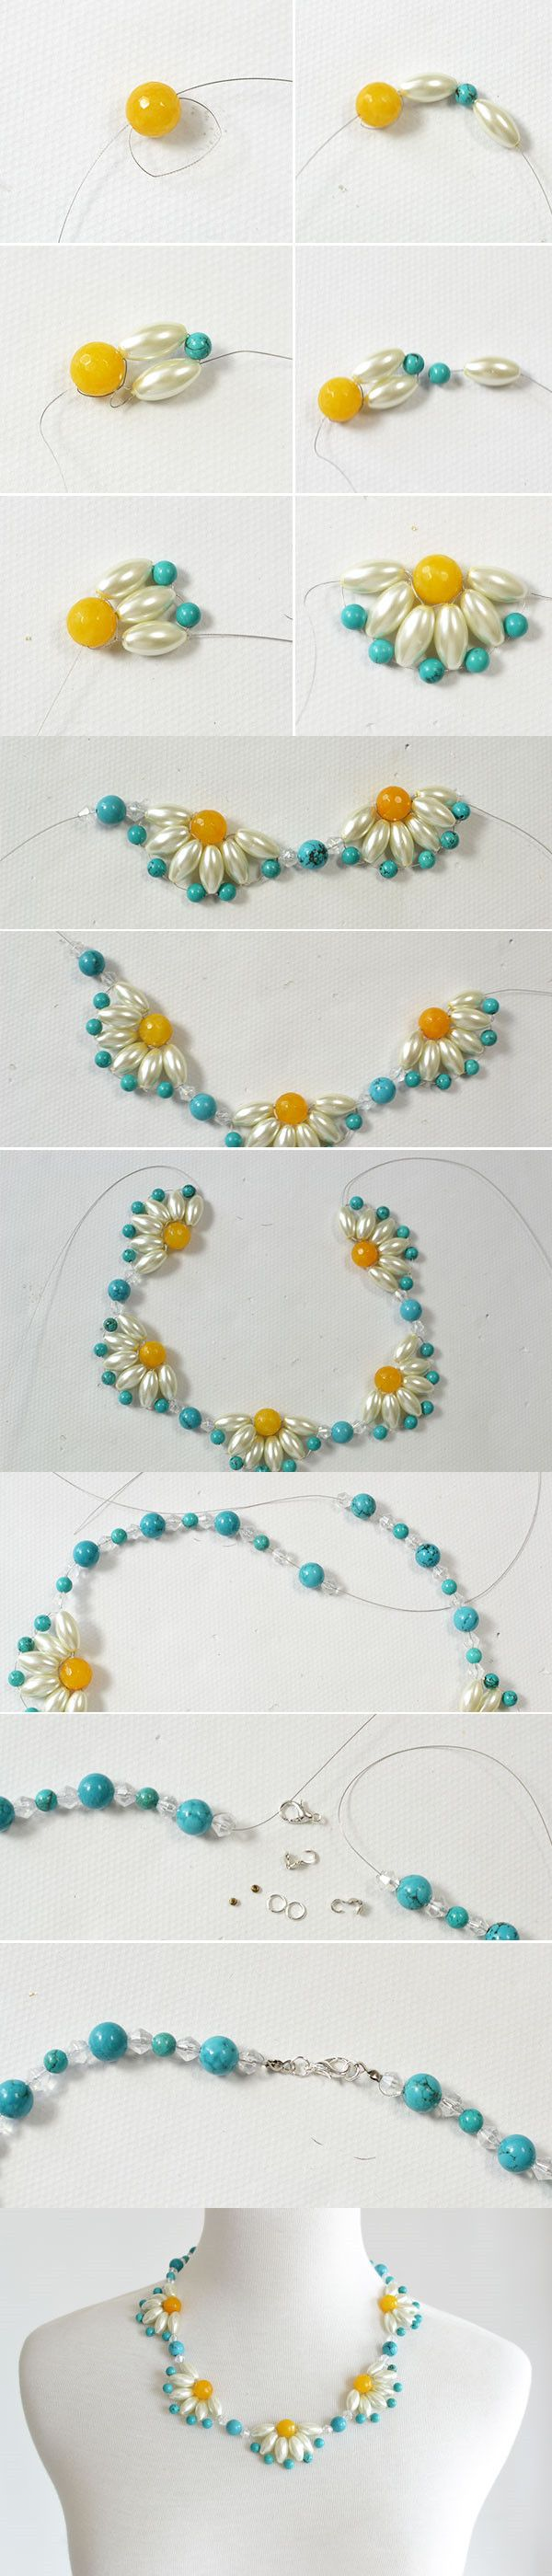 beads beading on necklace bead necklaces seed best pinterest images ng felt